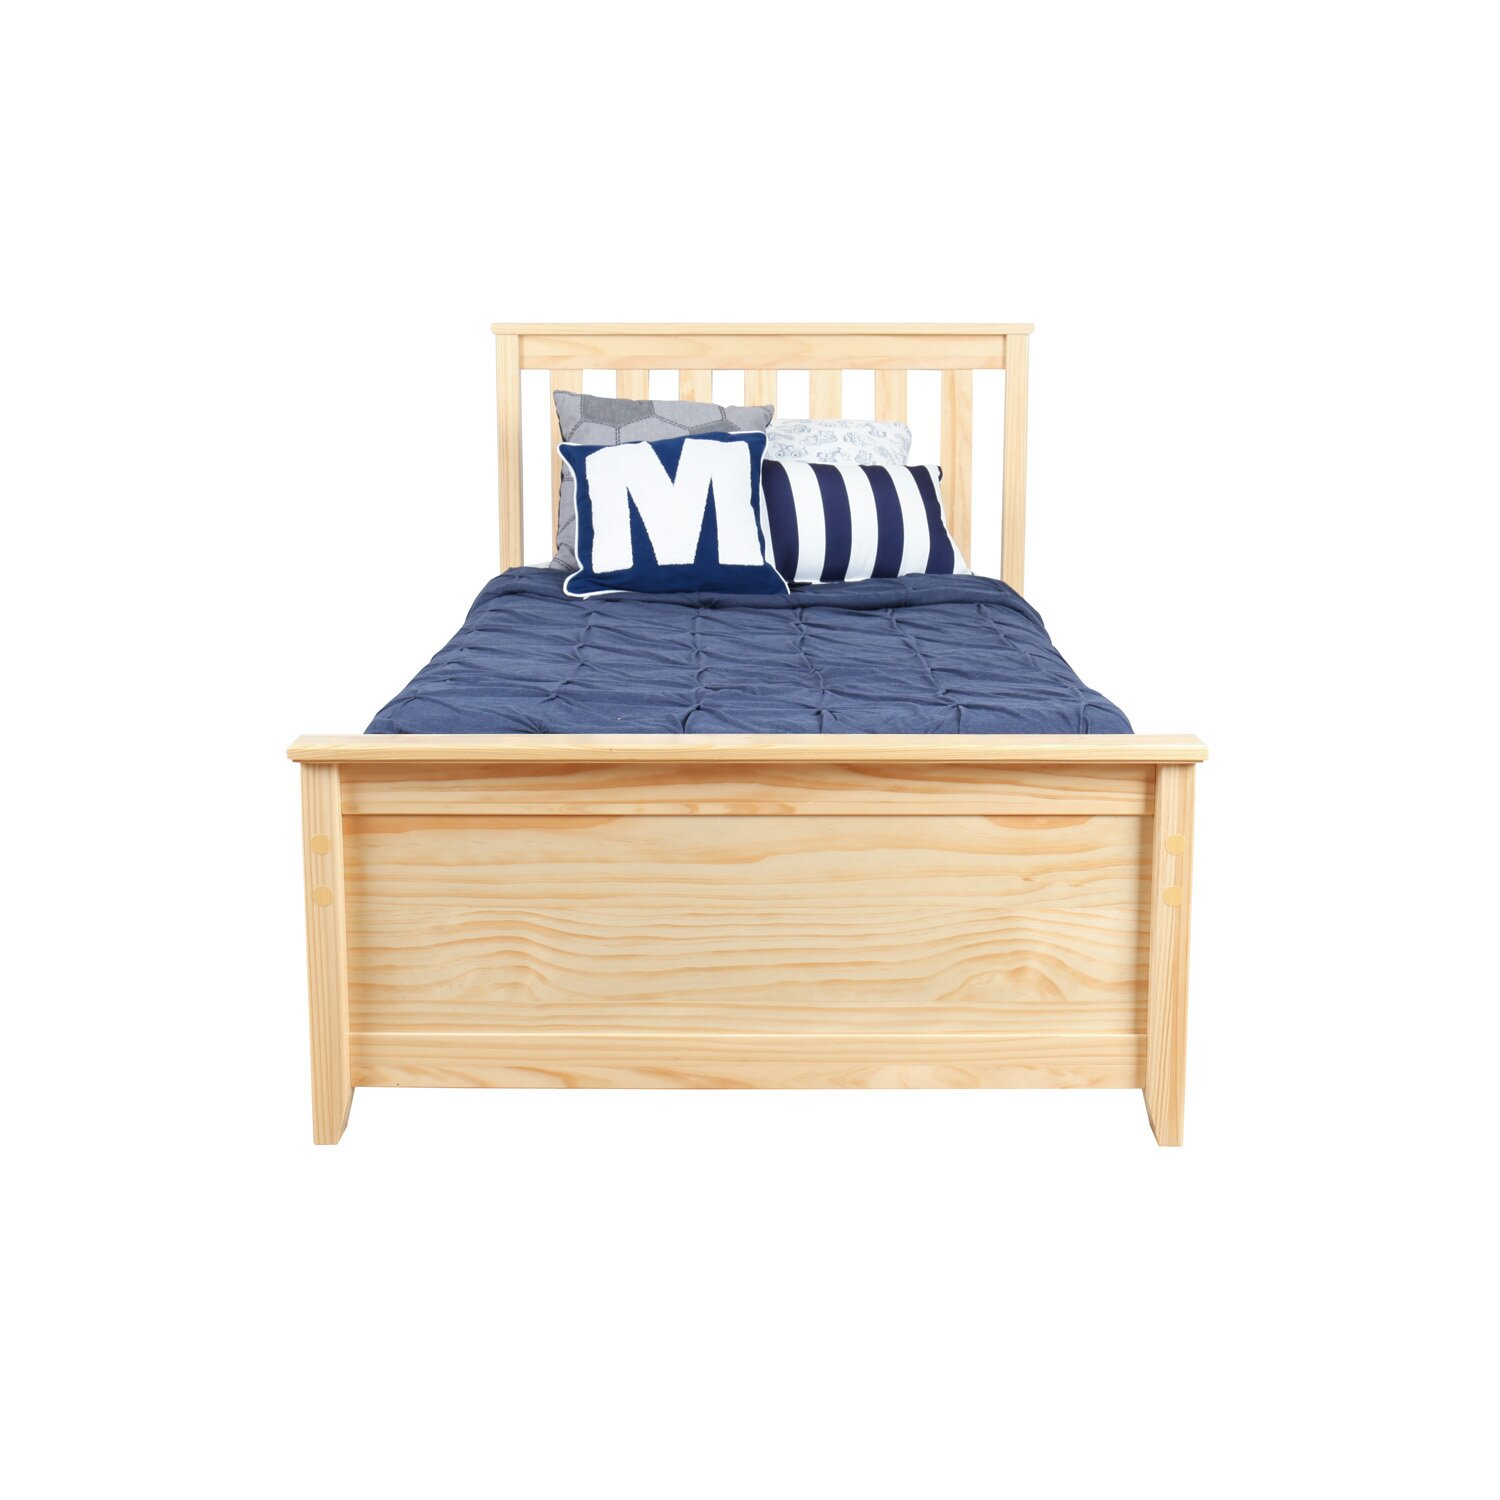 Max Amp Lily Solid Wood Twin Platform Bed With Under Bed